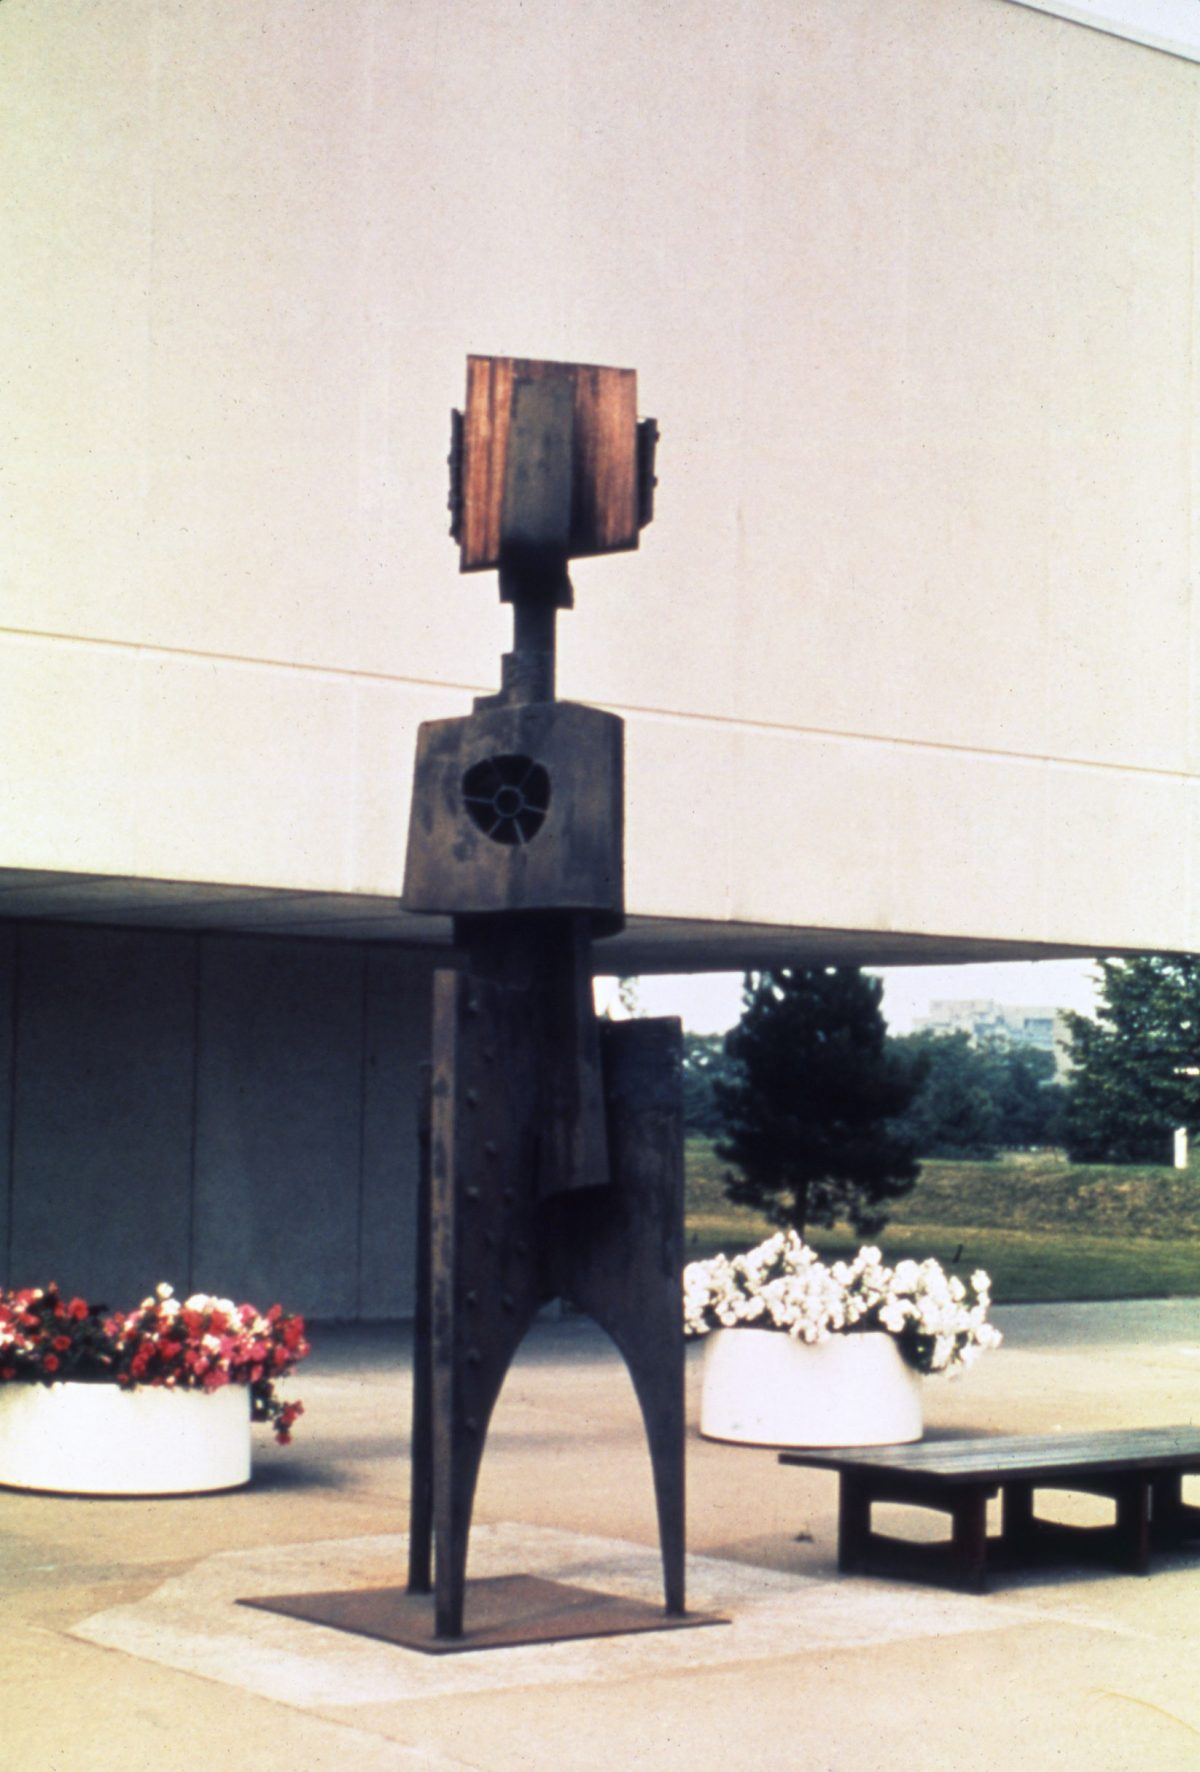 Cosmonaute n° 2, 1965, Steel and wood.